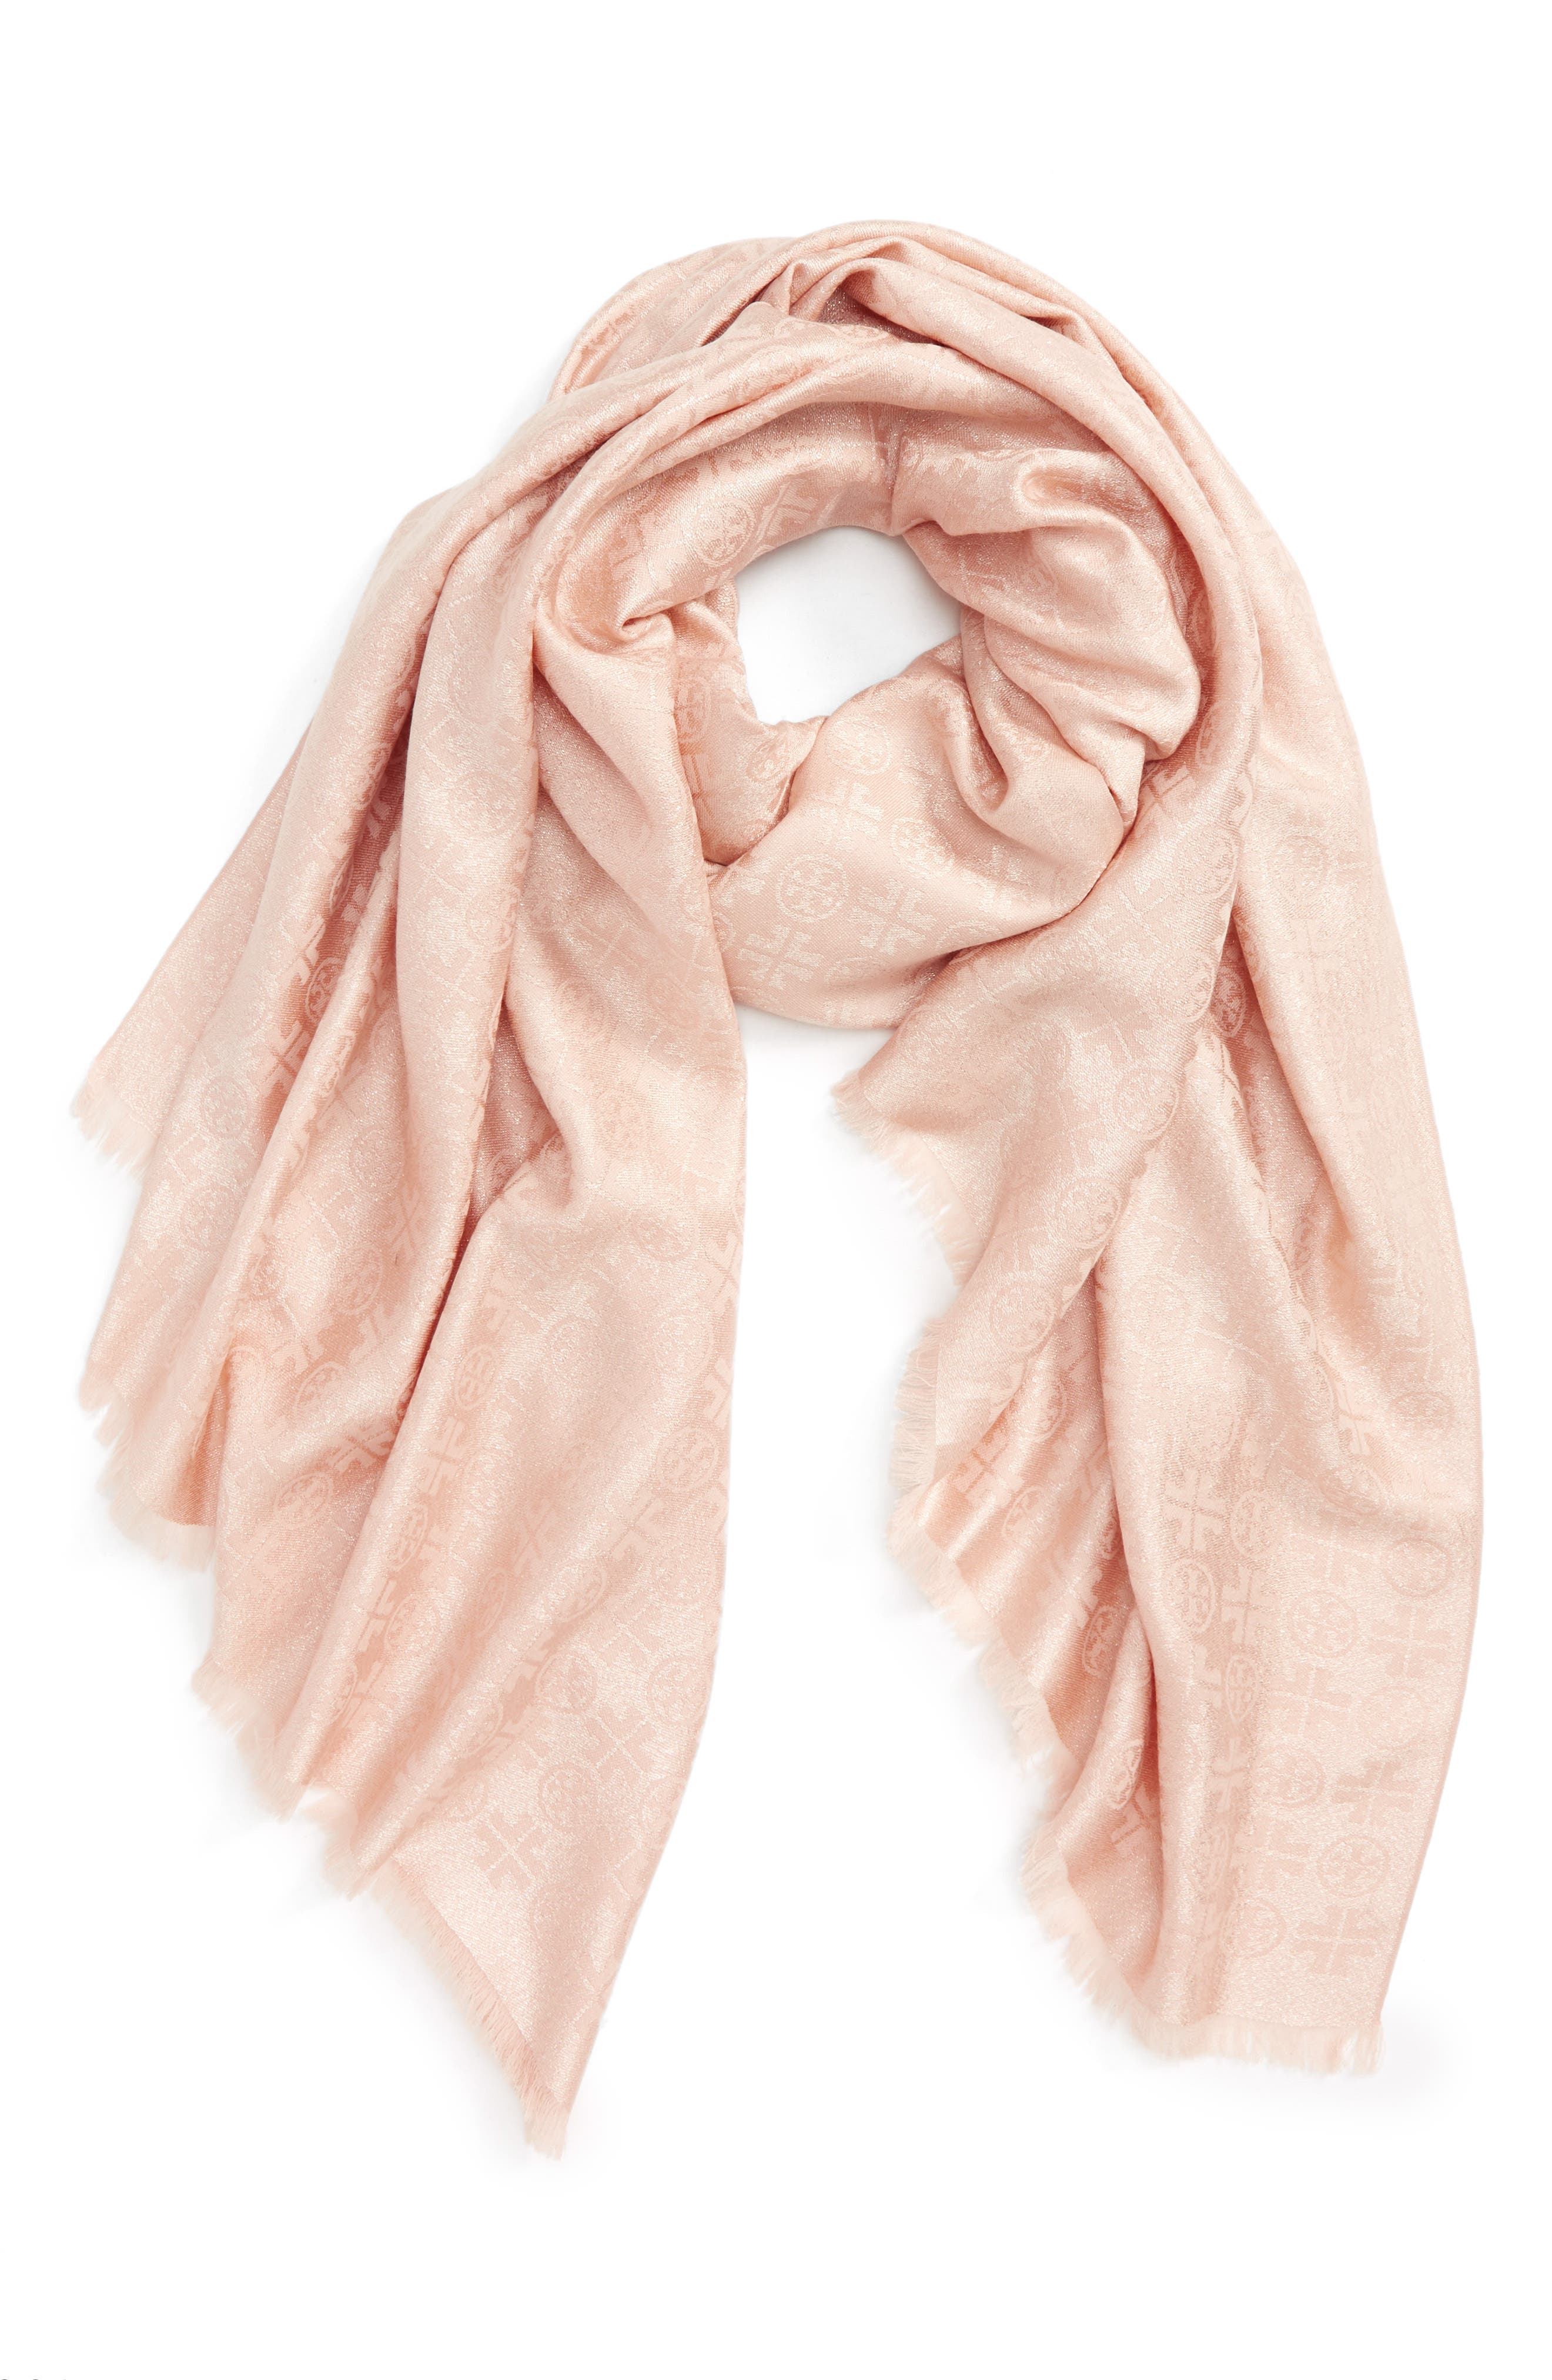 Main Image - Tory Burch Traveler Jacquard Oblong Scarf